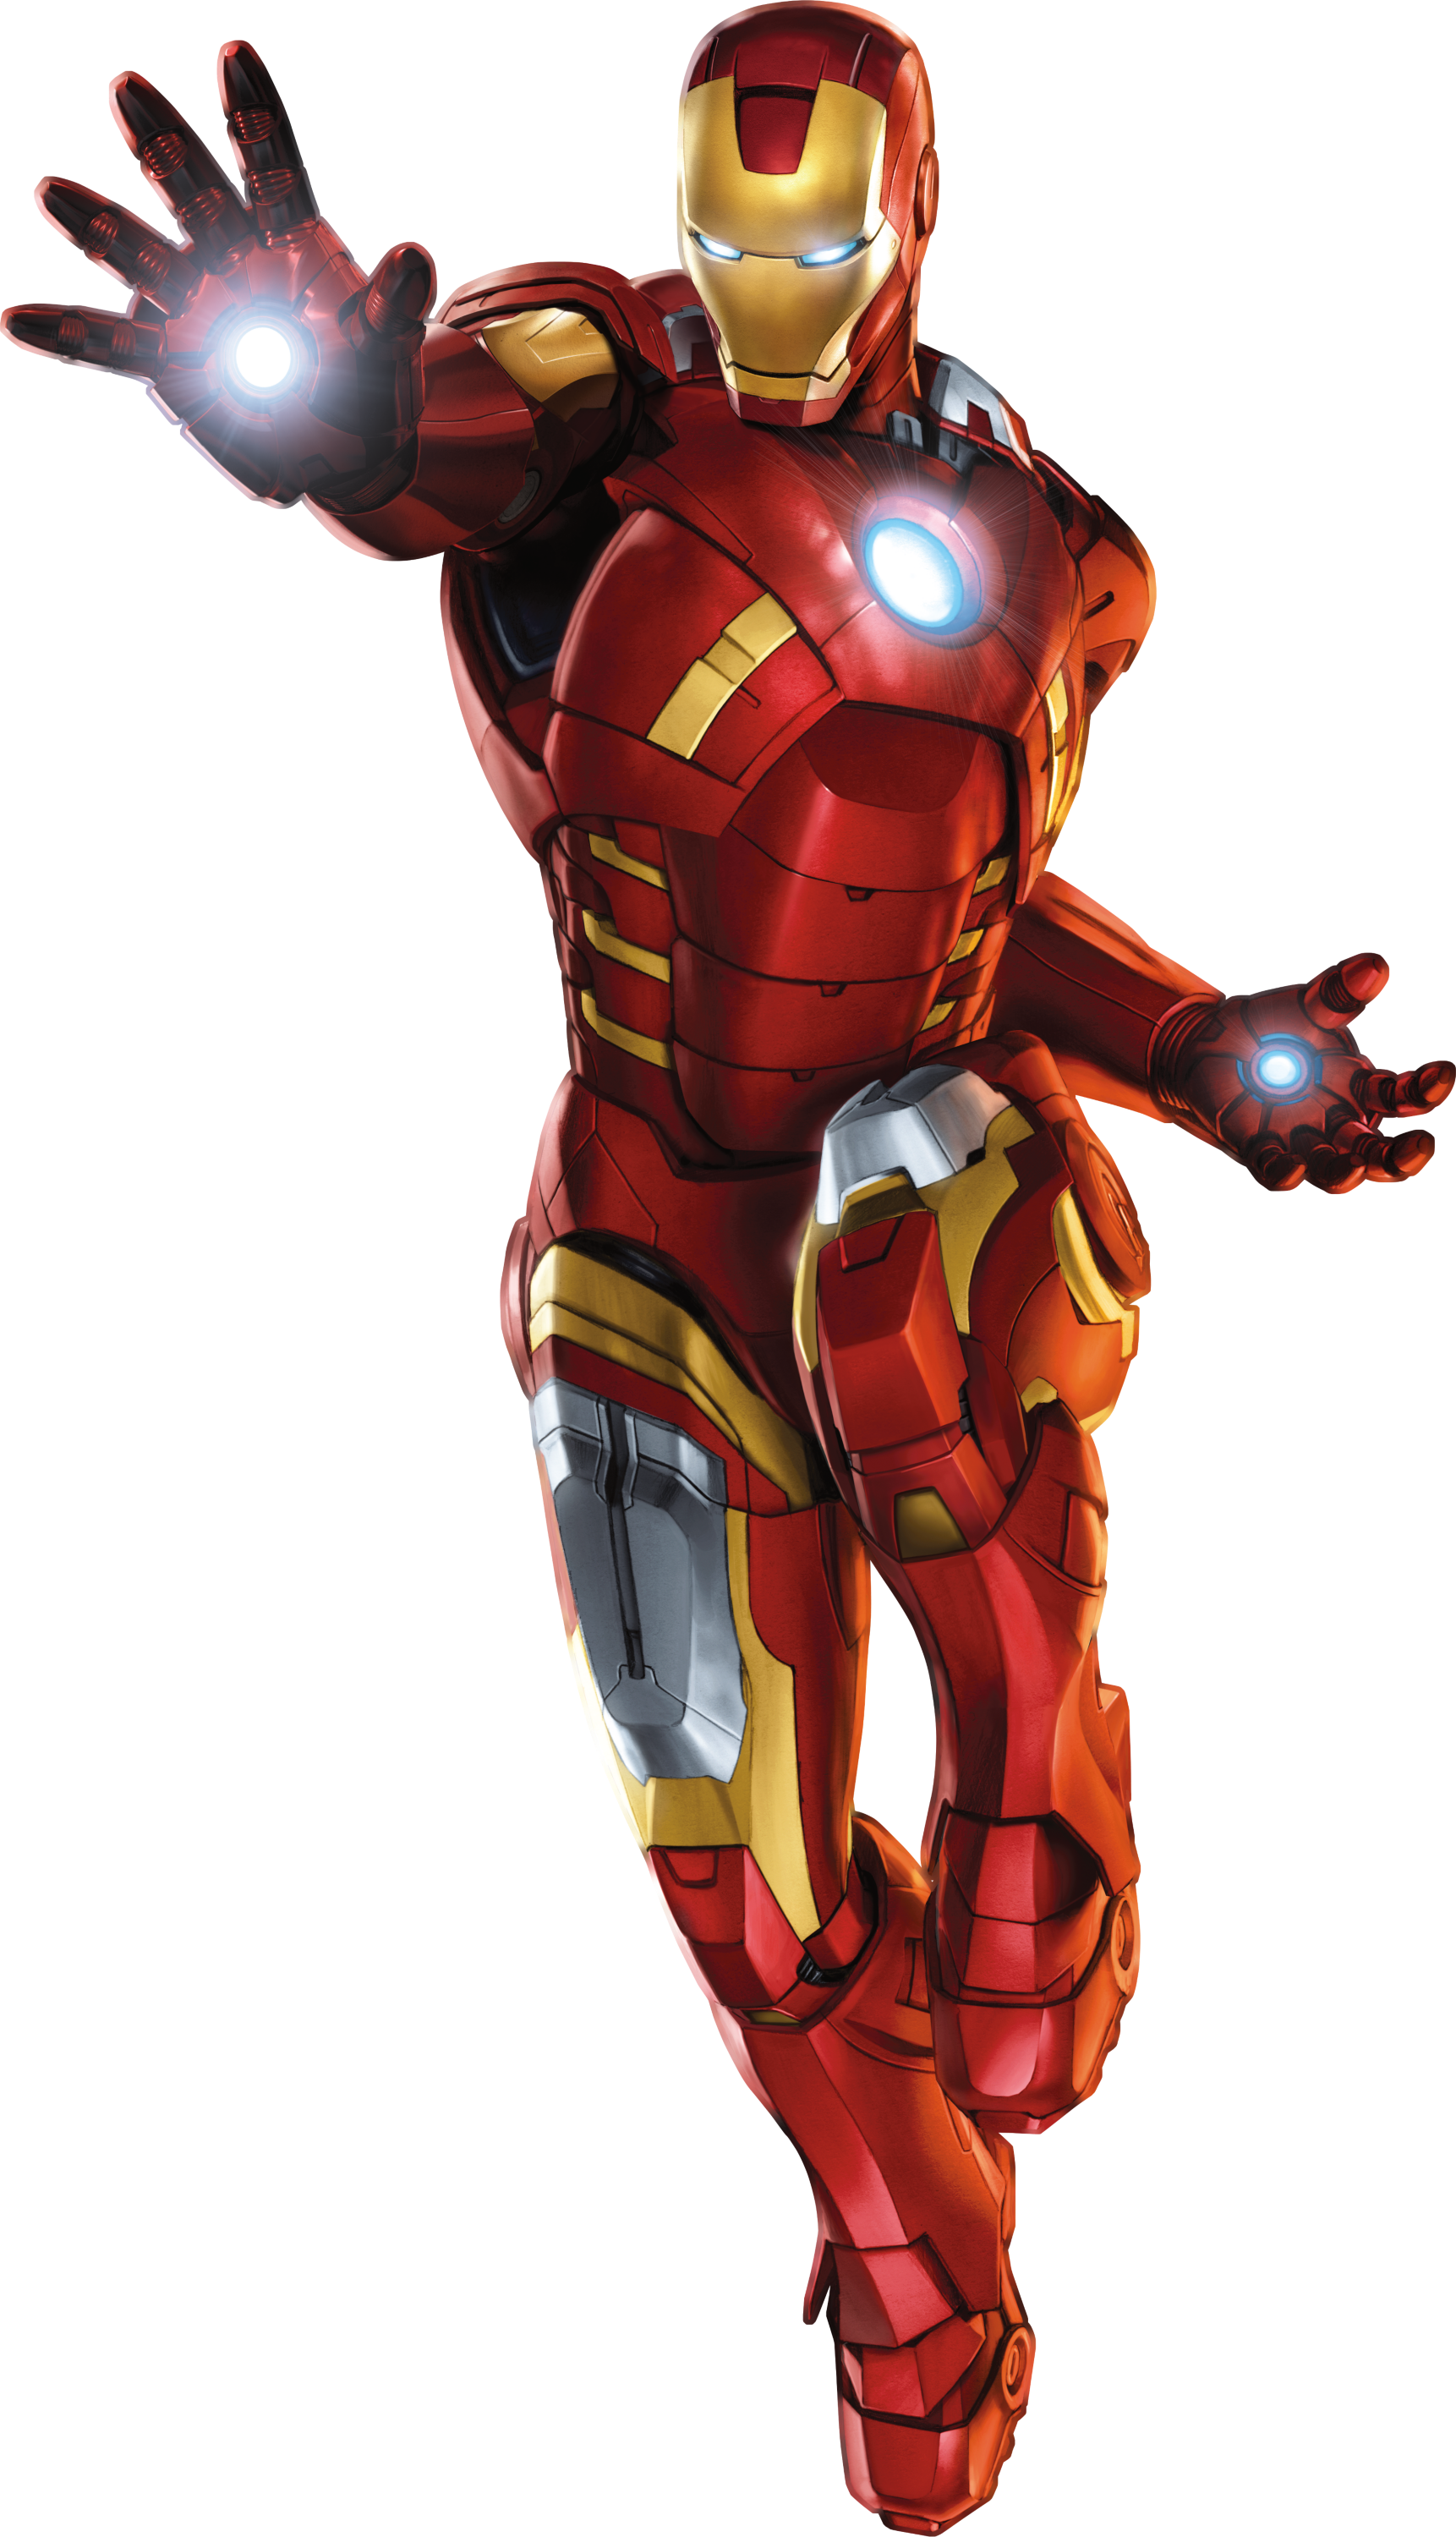 tableau iron man 3 marvel tableau sur b b gavroche. Black Bedroom Furniture Sets. Home Design Ideas